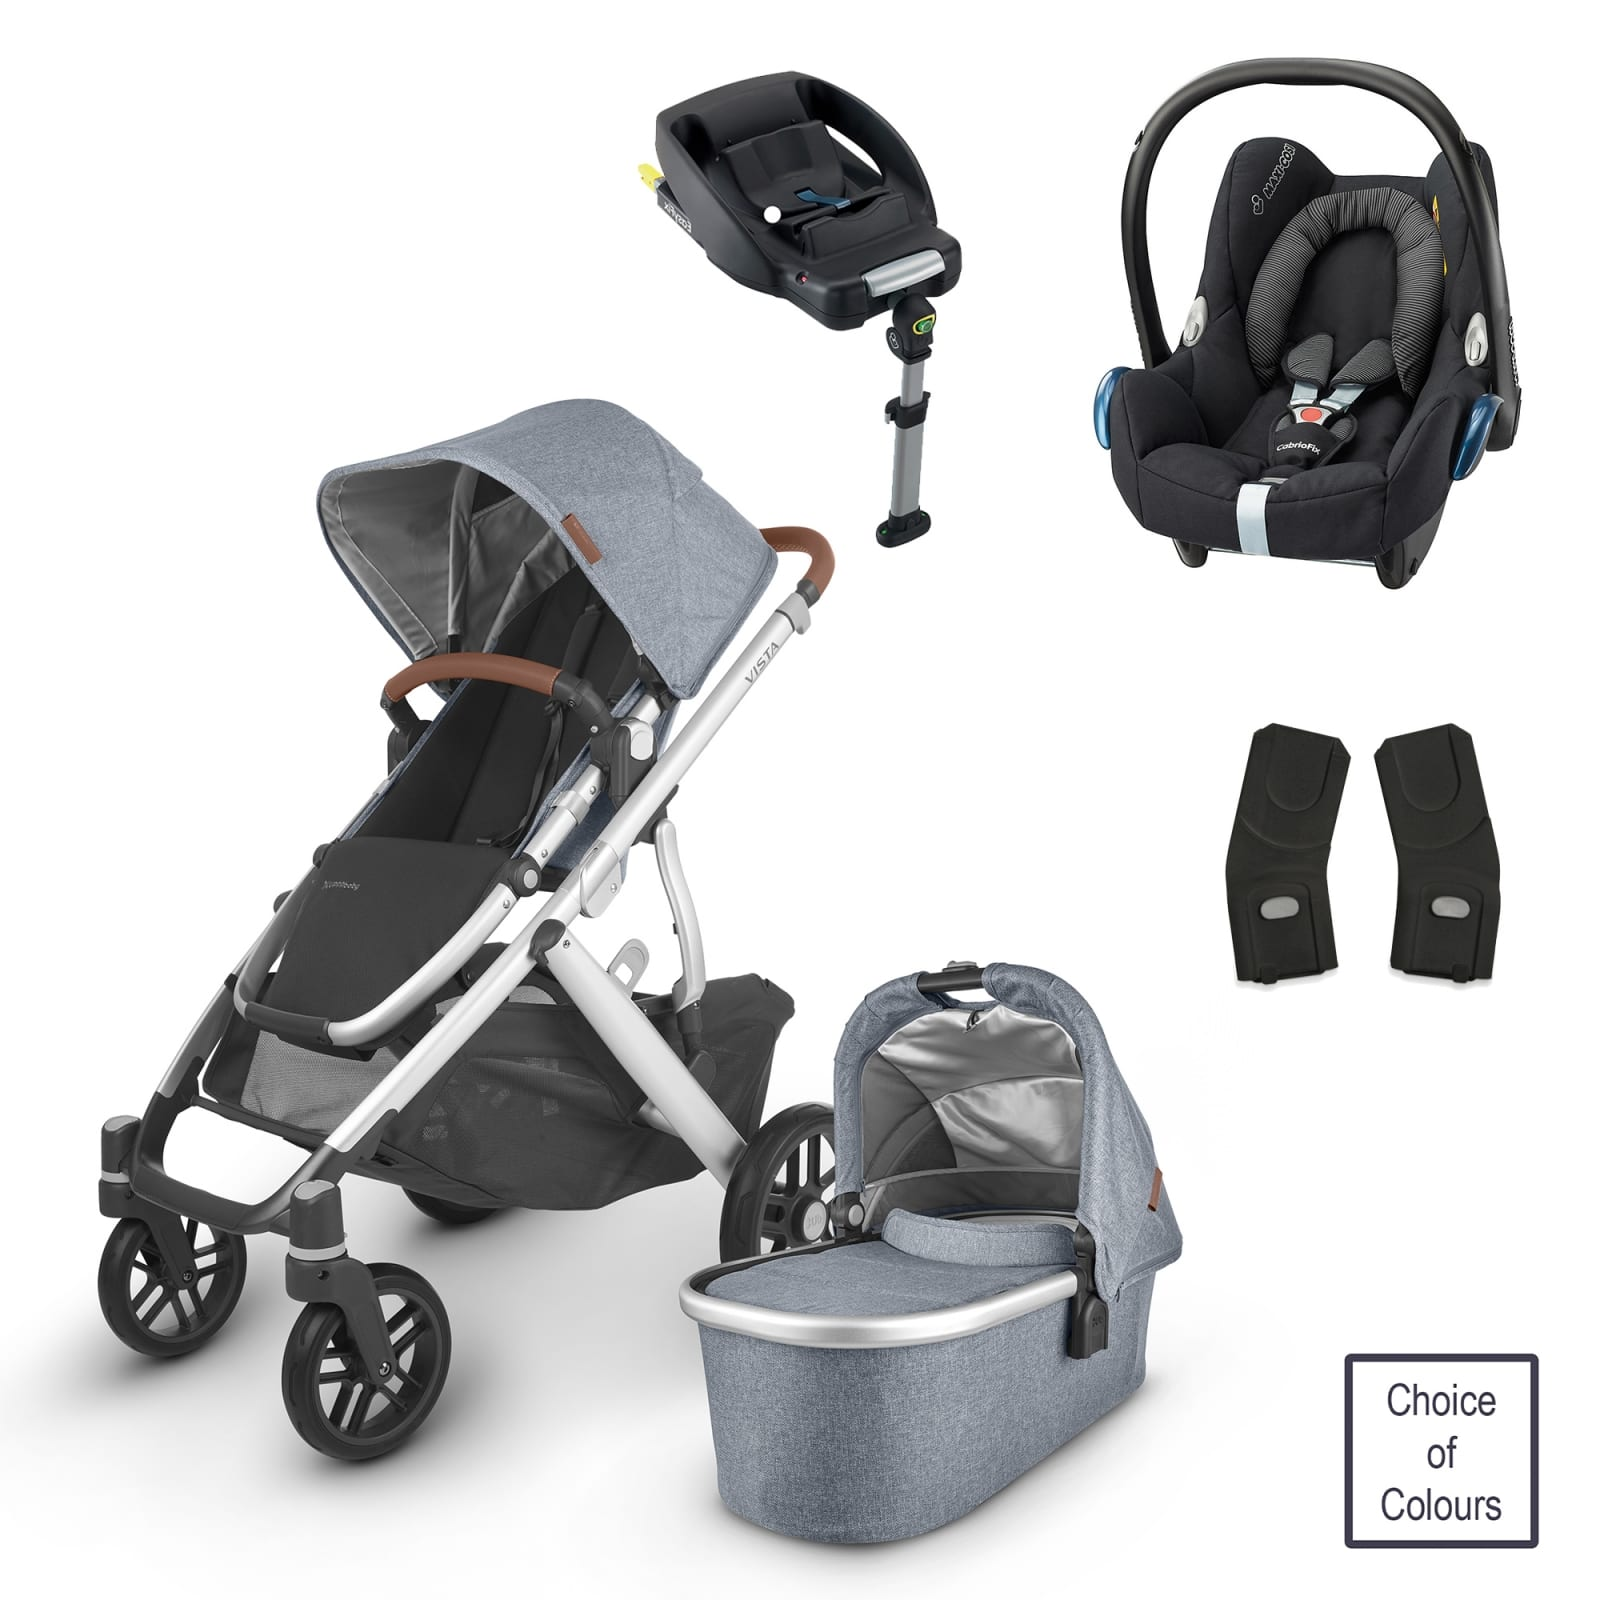 UPPABaby VISTA 2 Bundle with Maxi Cosi CabrioFix & Base product image